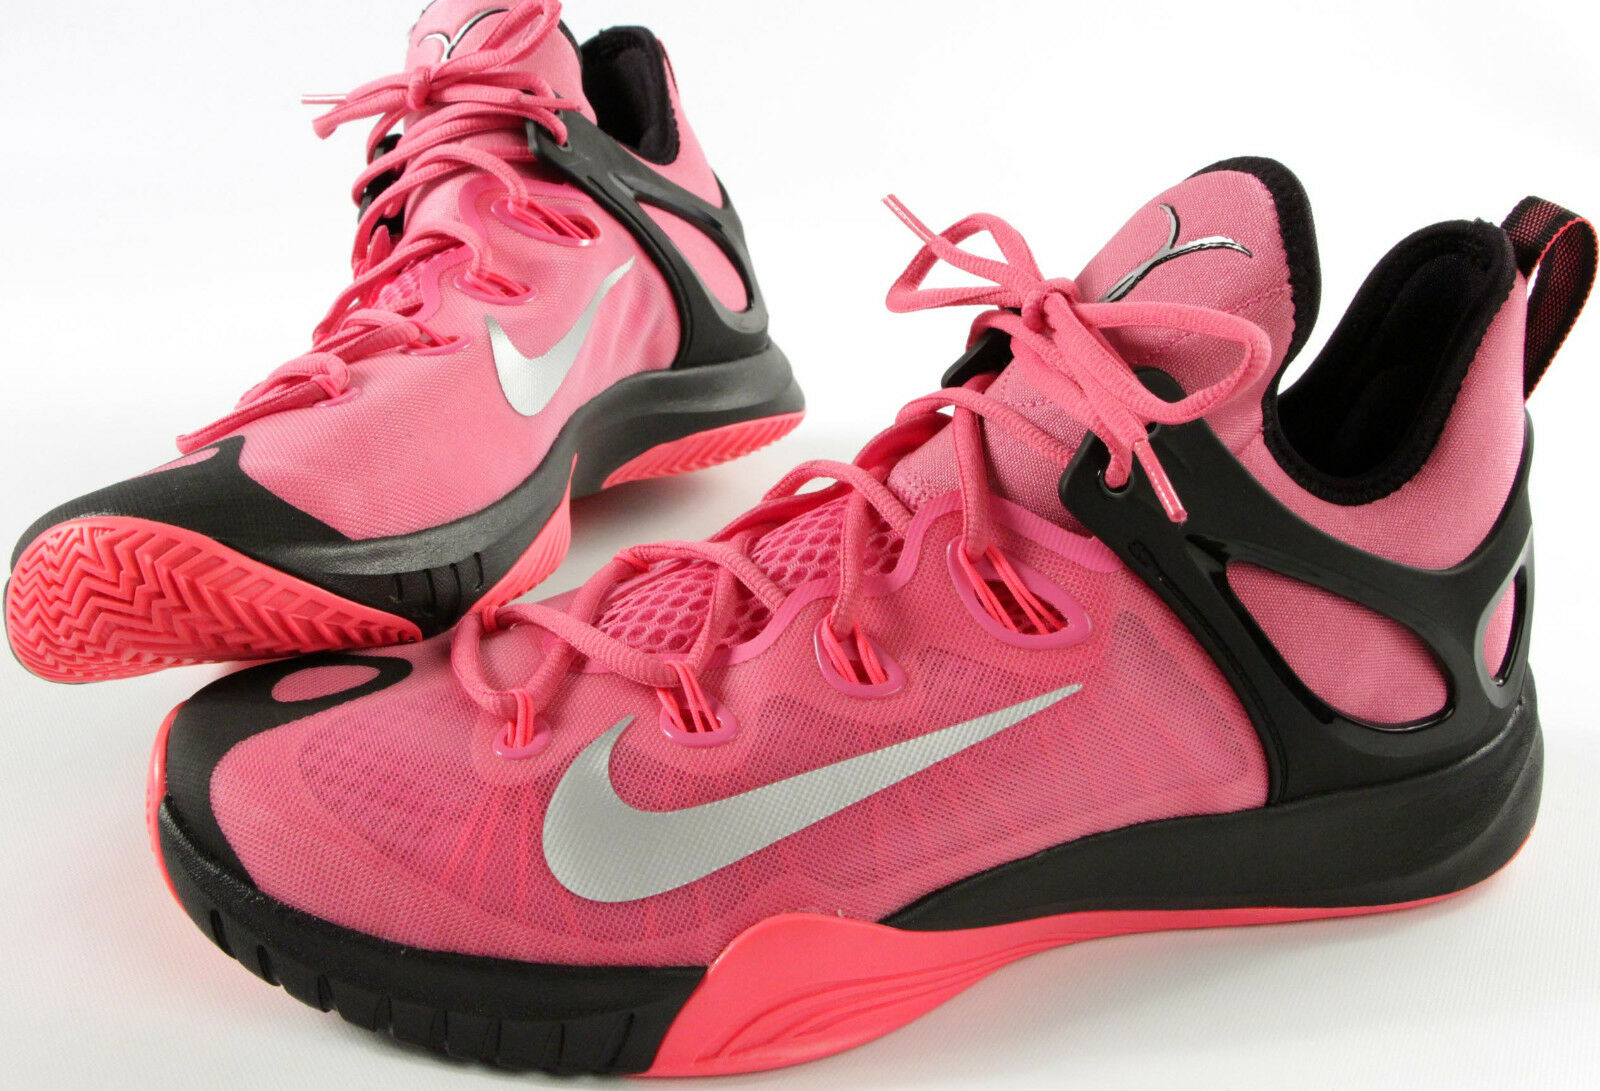 3513e79e6a950 NIKE Zoom HyperRev 2015 shoes- Think Think Think PINK- 12- NEW ...